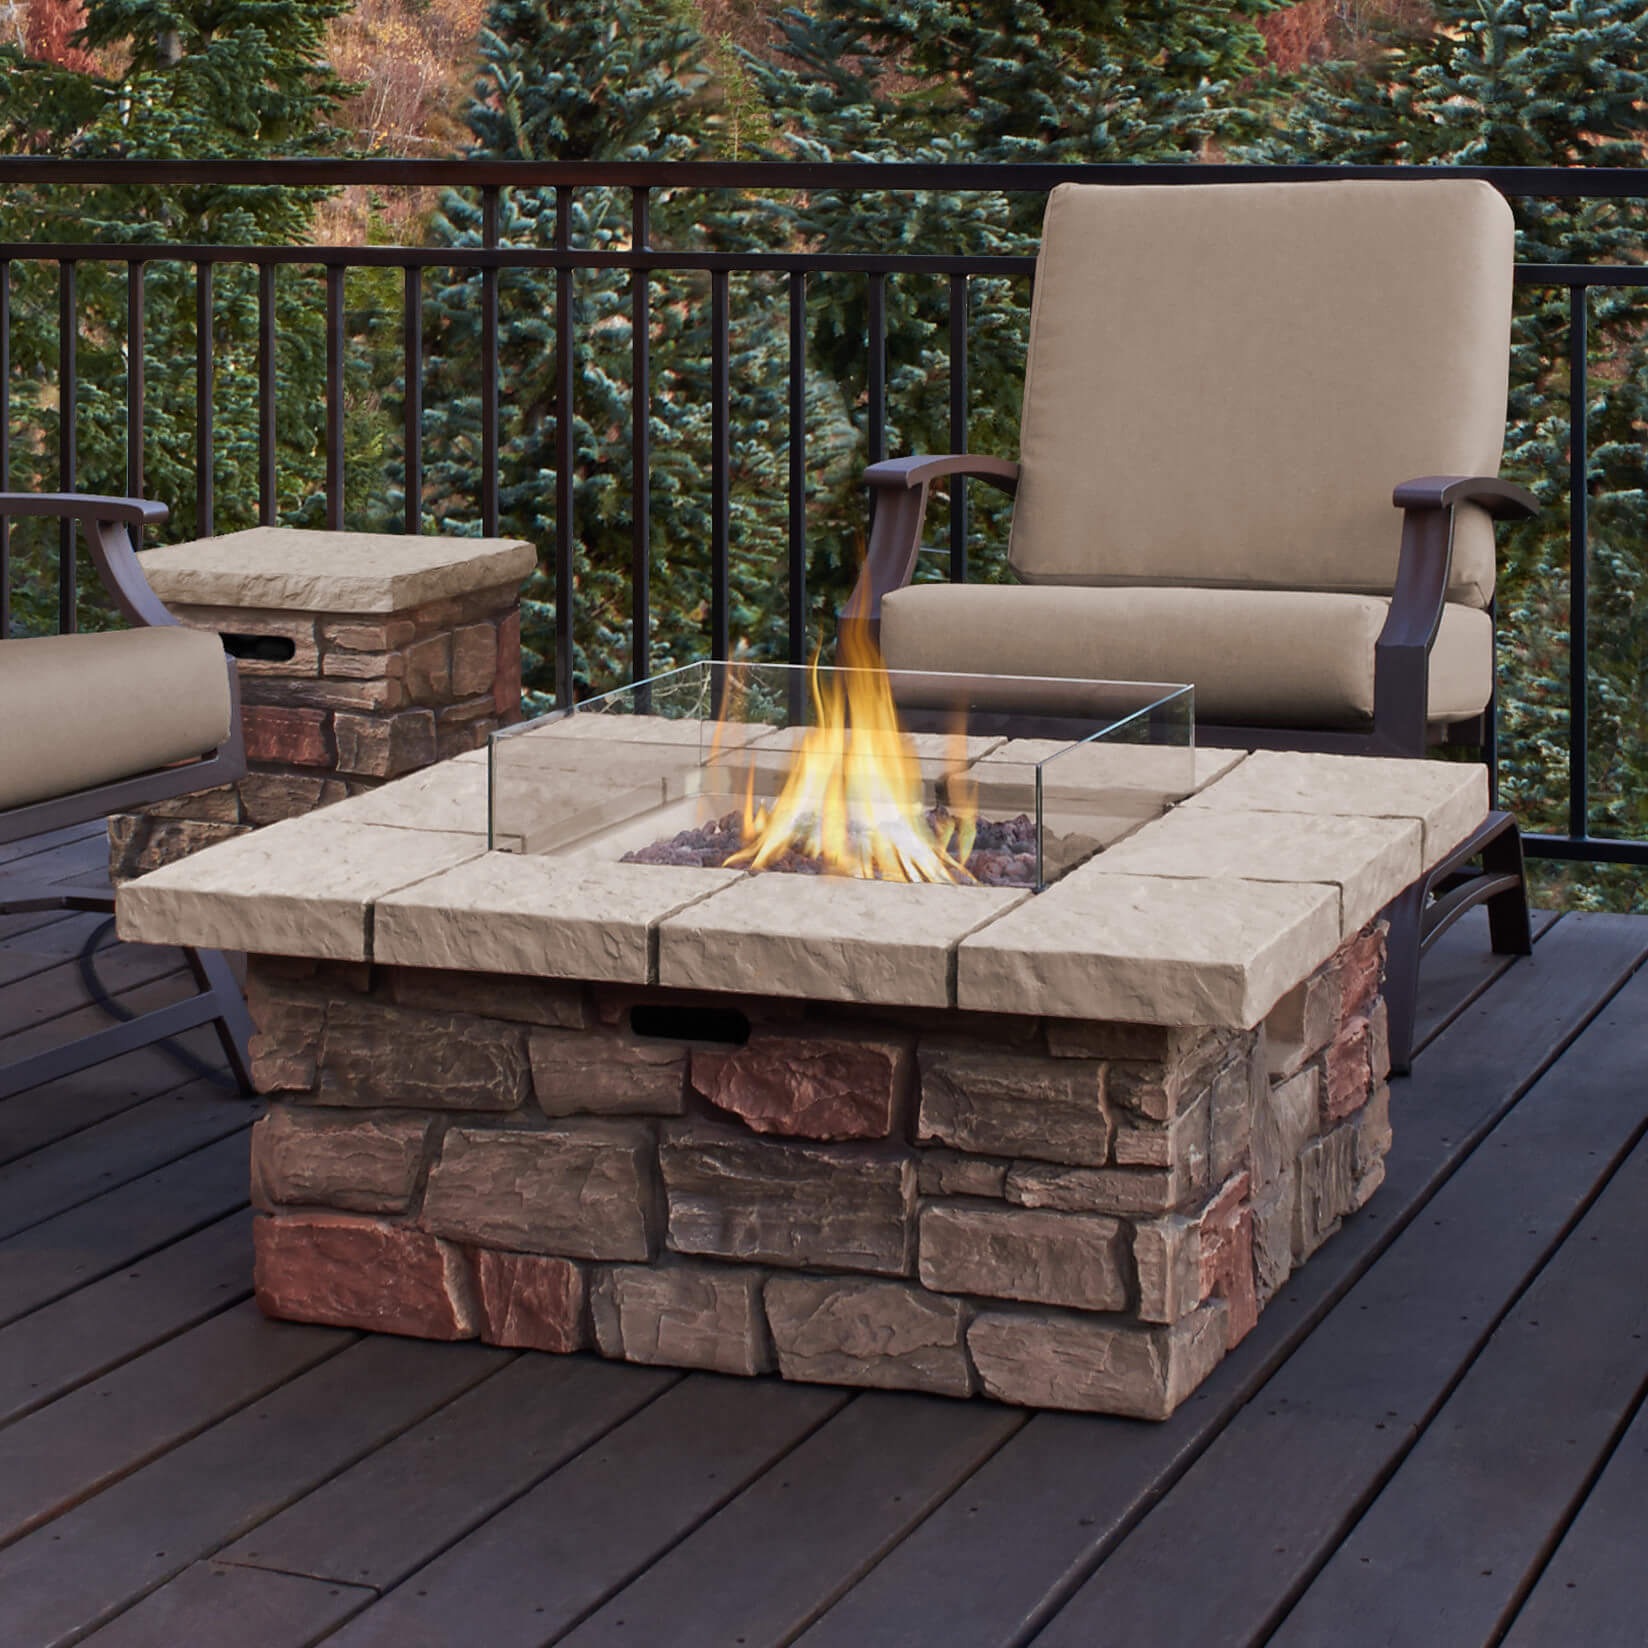 Big W Outdoor Table And Chairs Top 15 Types Of Propane Patio Fire Pits With Table Buying